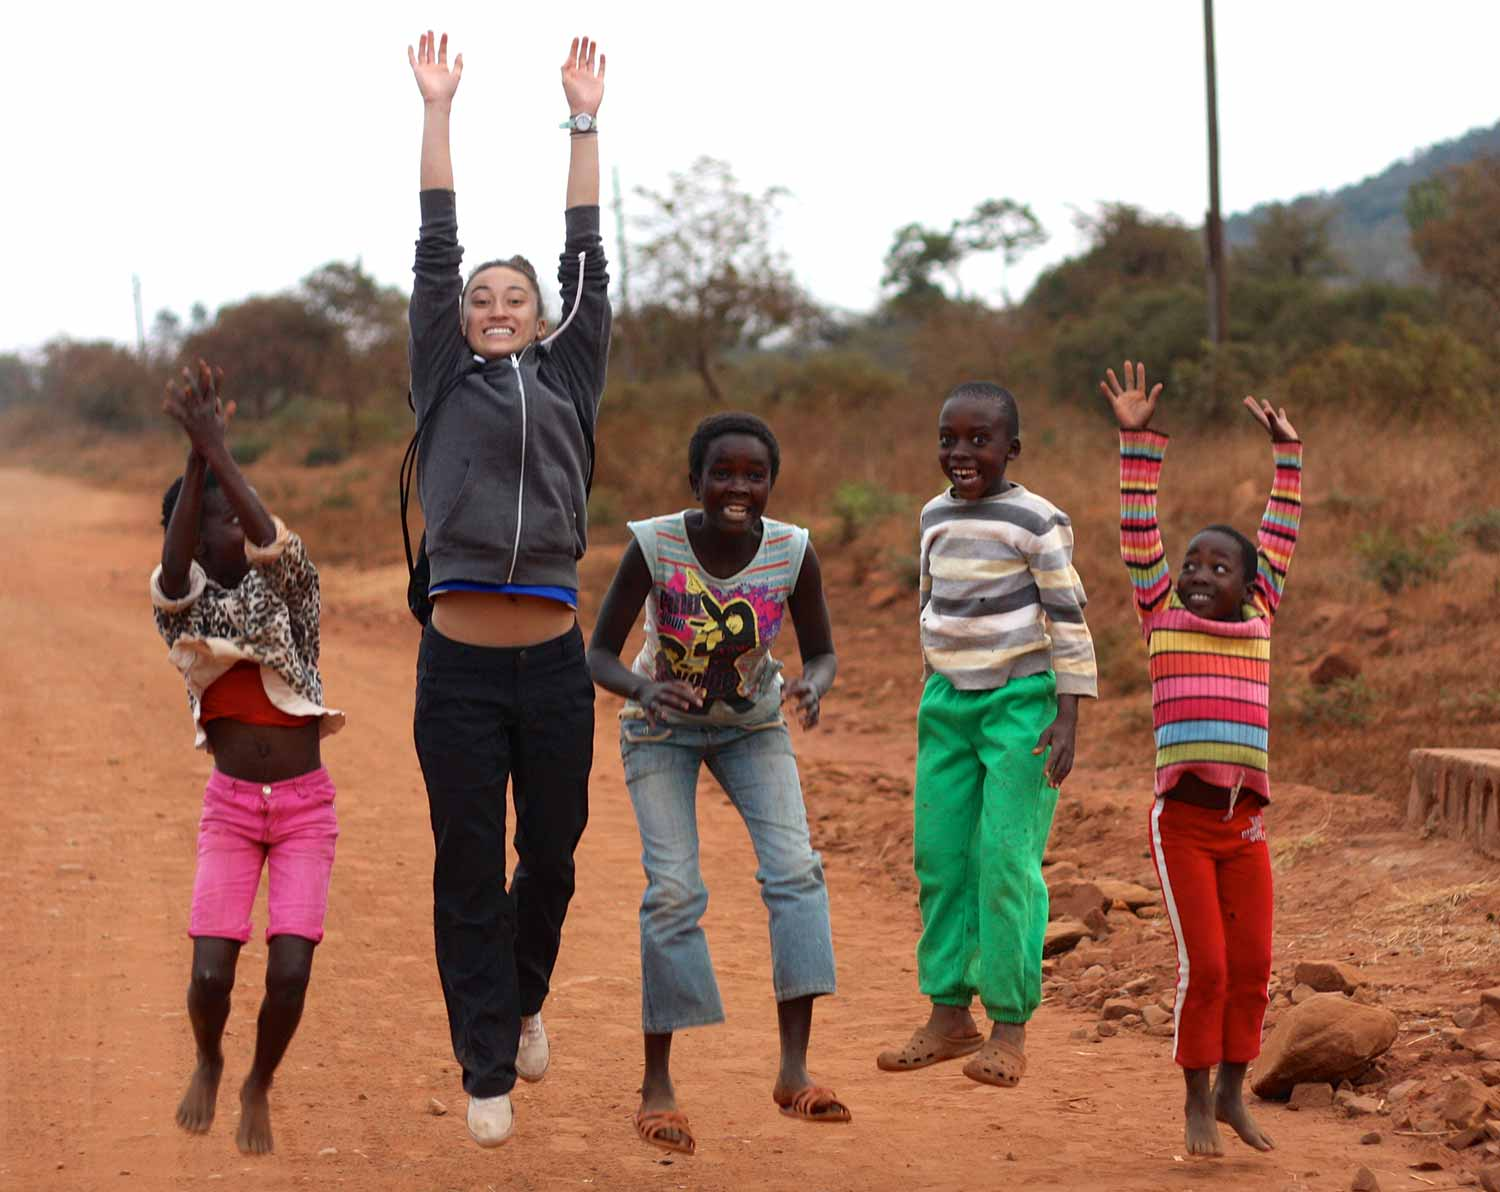 Global Health Minor, Michelle Bulterys completing her Global Health Field Experience in a small African Village studying traditional healing practices.